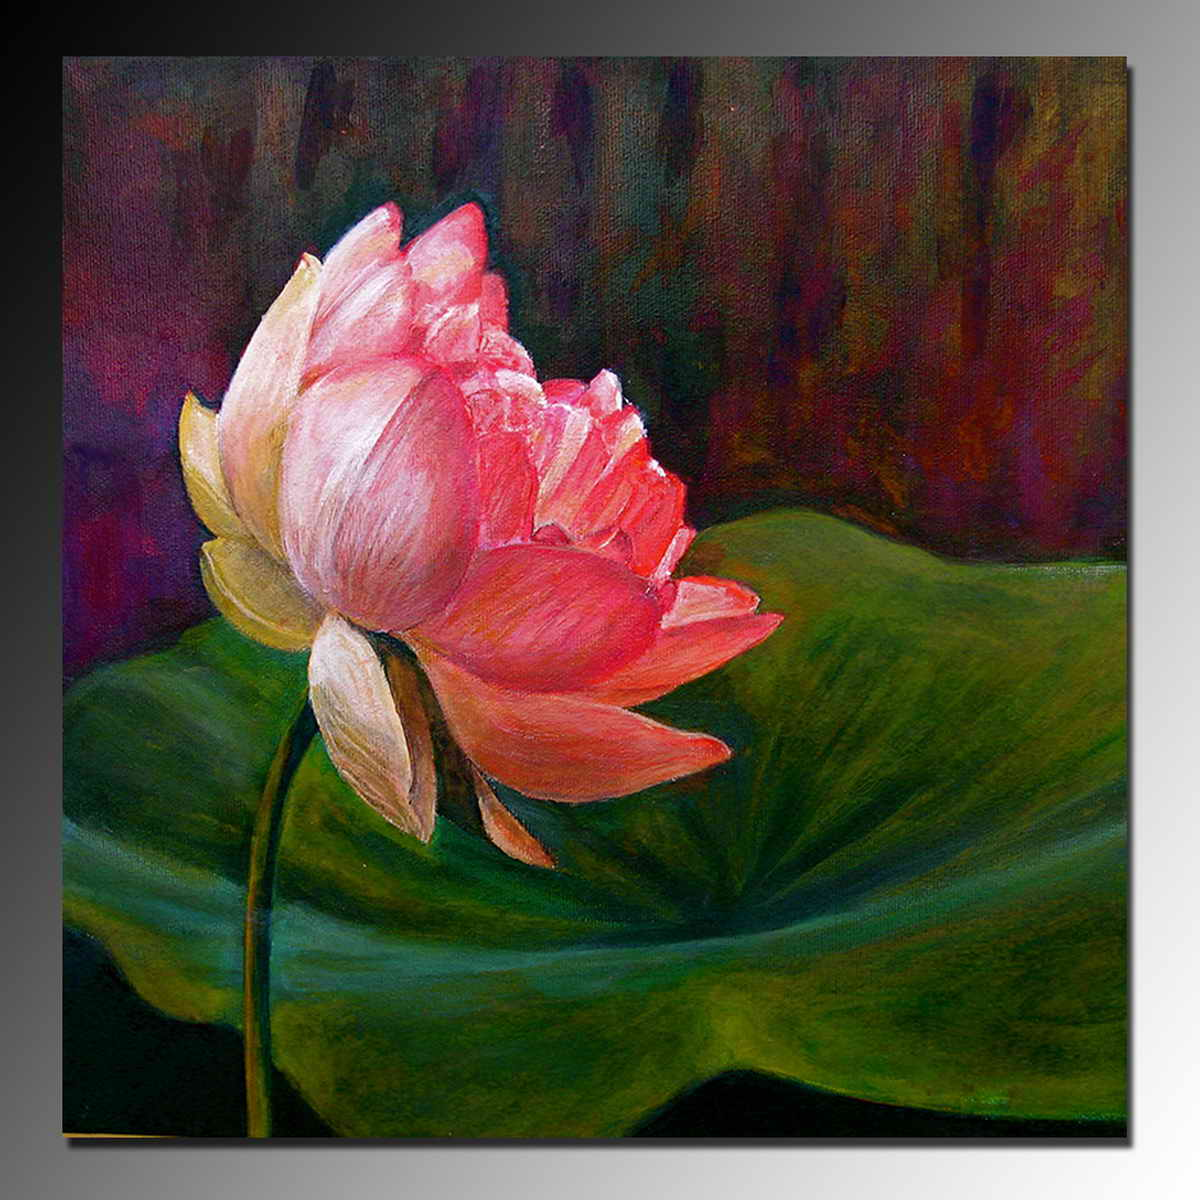 Handmade Water Lily Lotus Flower And Leaf Oil Paintings For Home